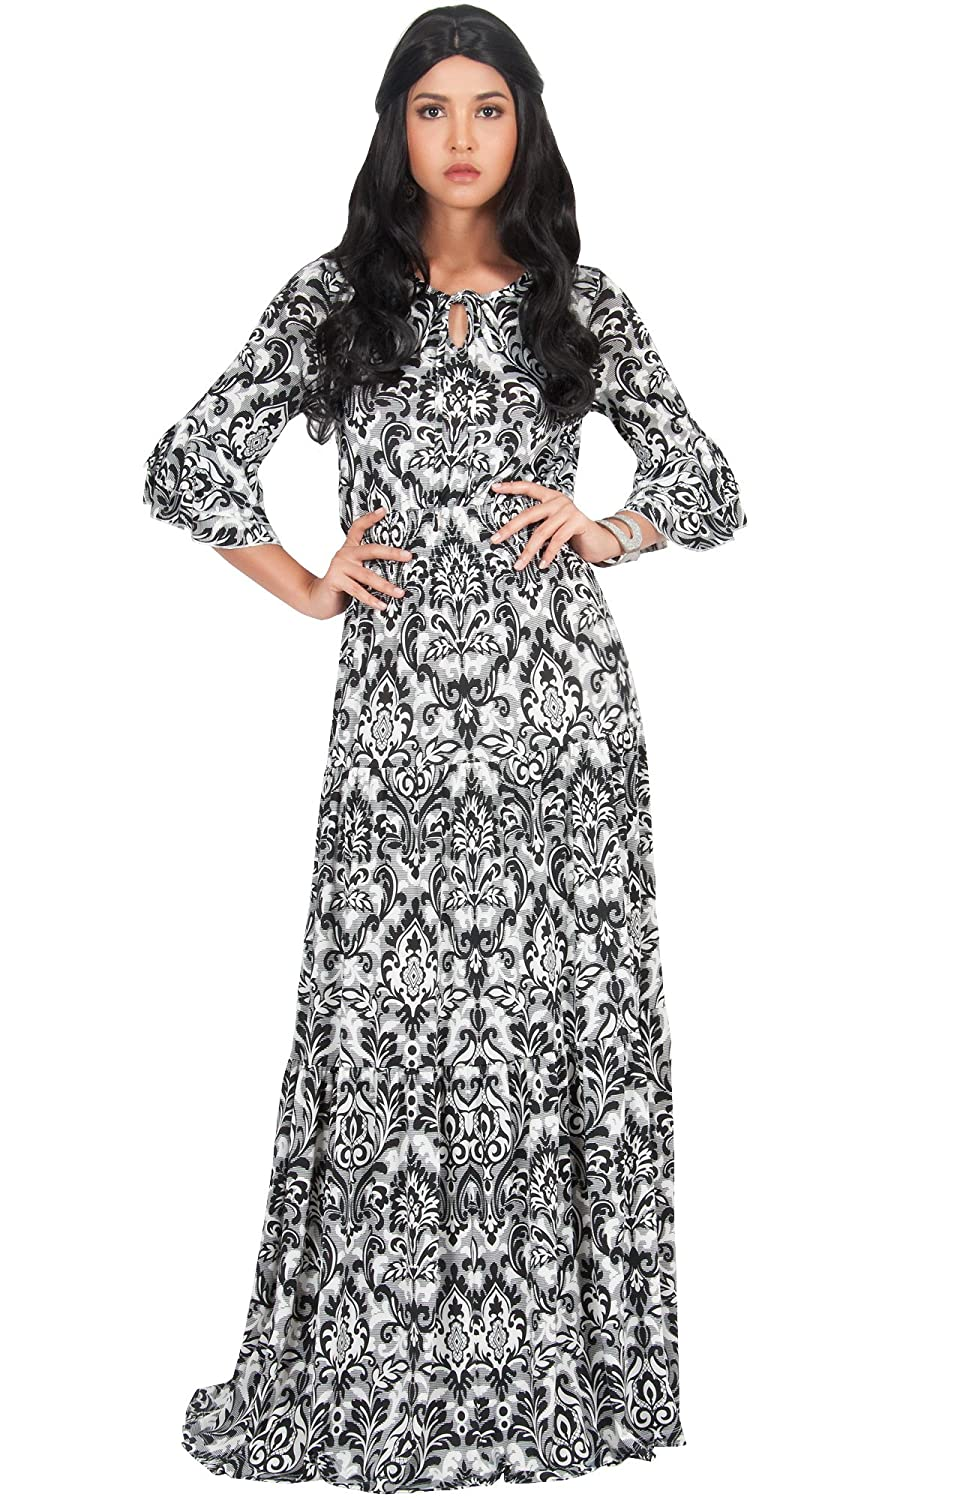 e65d430e4fa9 PLUS SIZE - Flattering and slimming plus size maxi dresses and gowns  plus  sized full length clothing for larger ladies. STYLE - Loose fitting long  sleeved ...